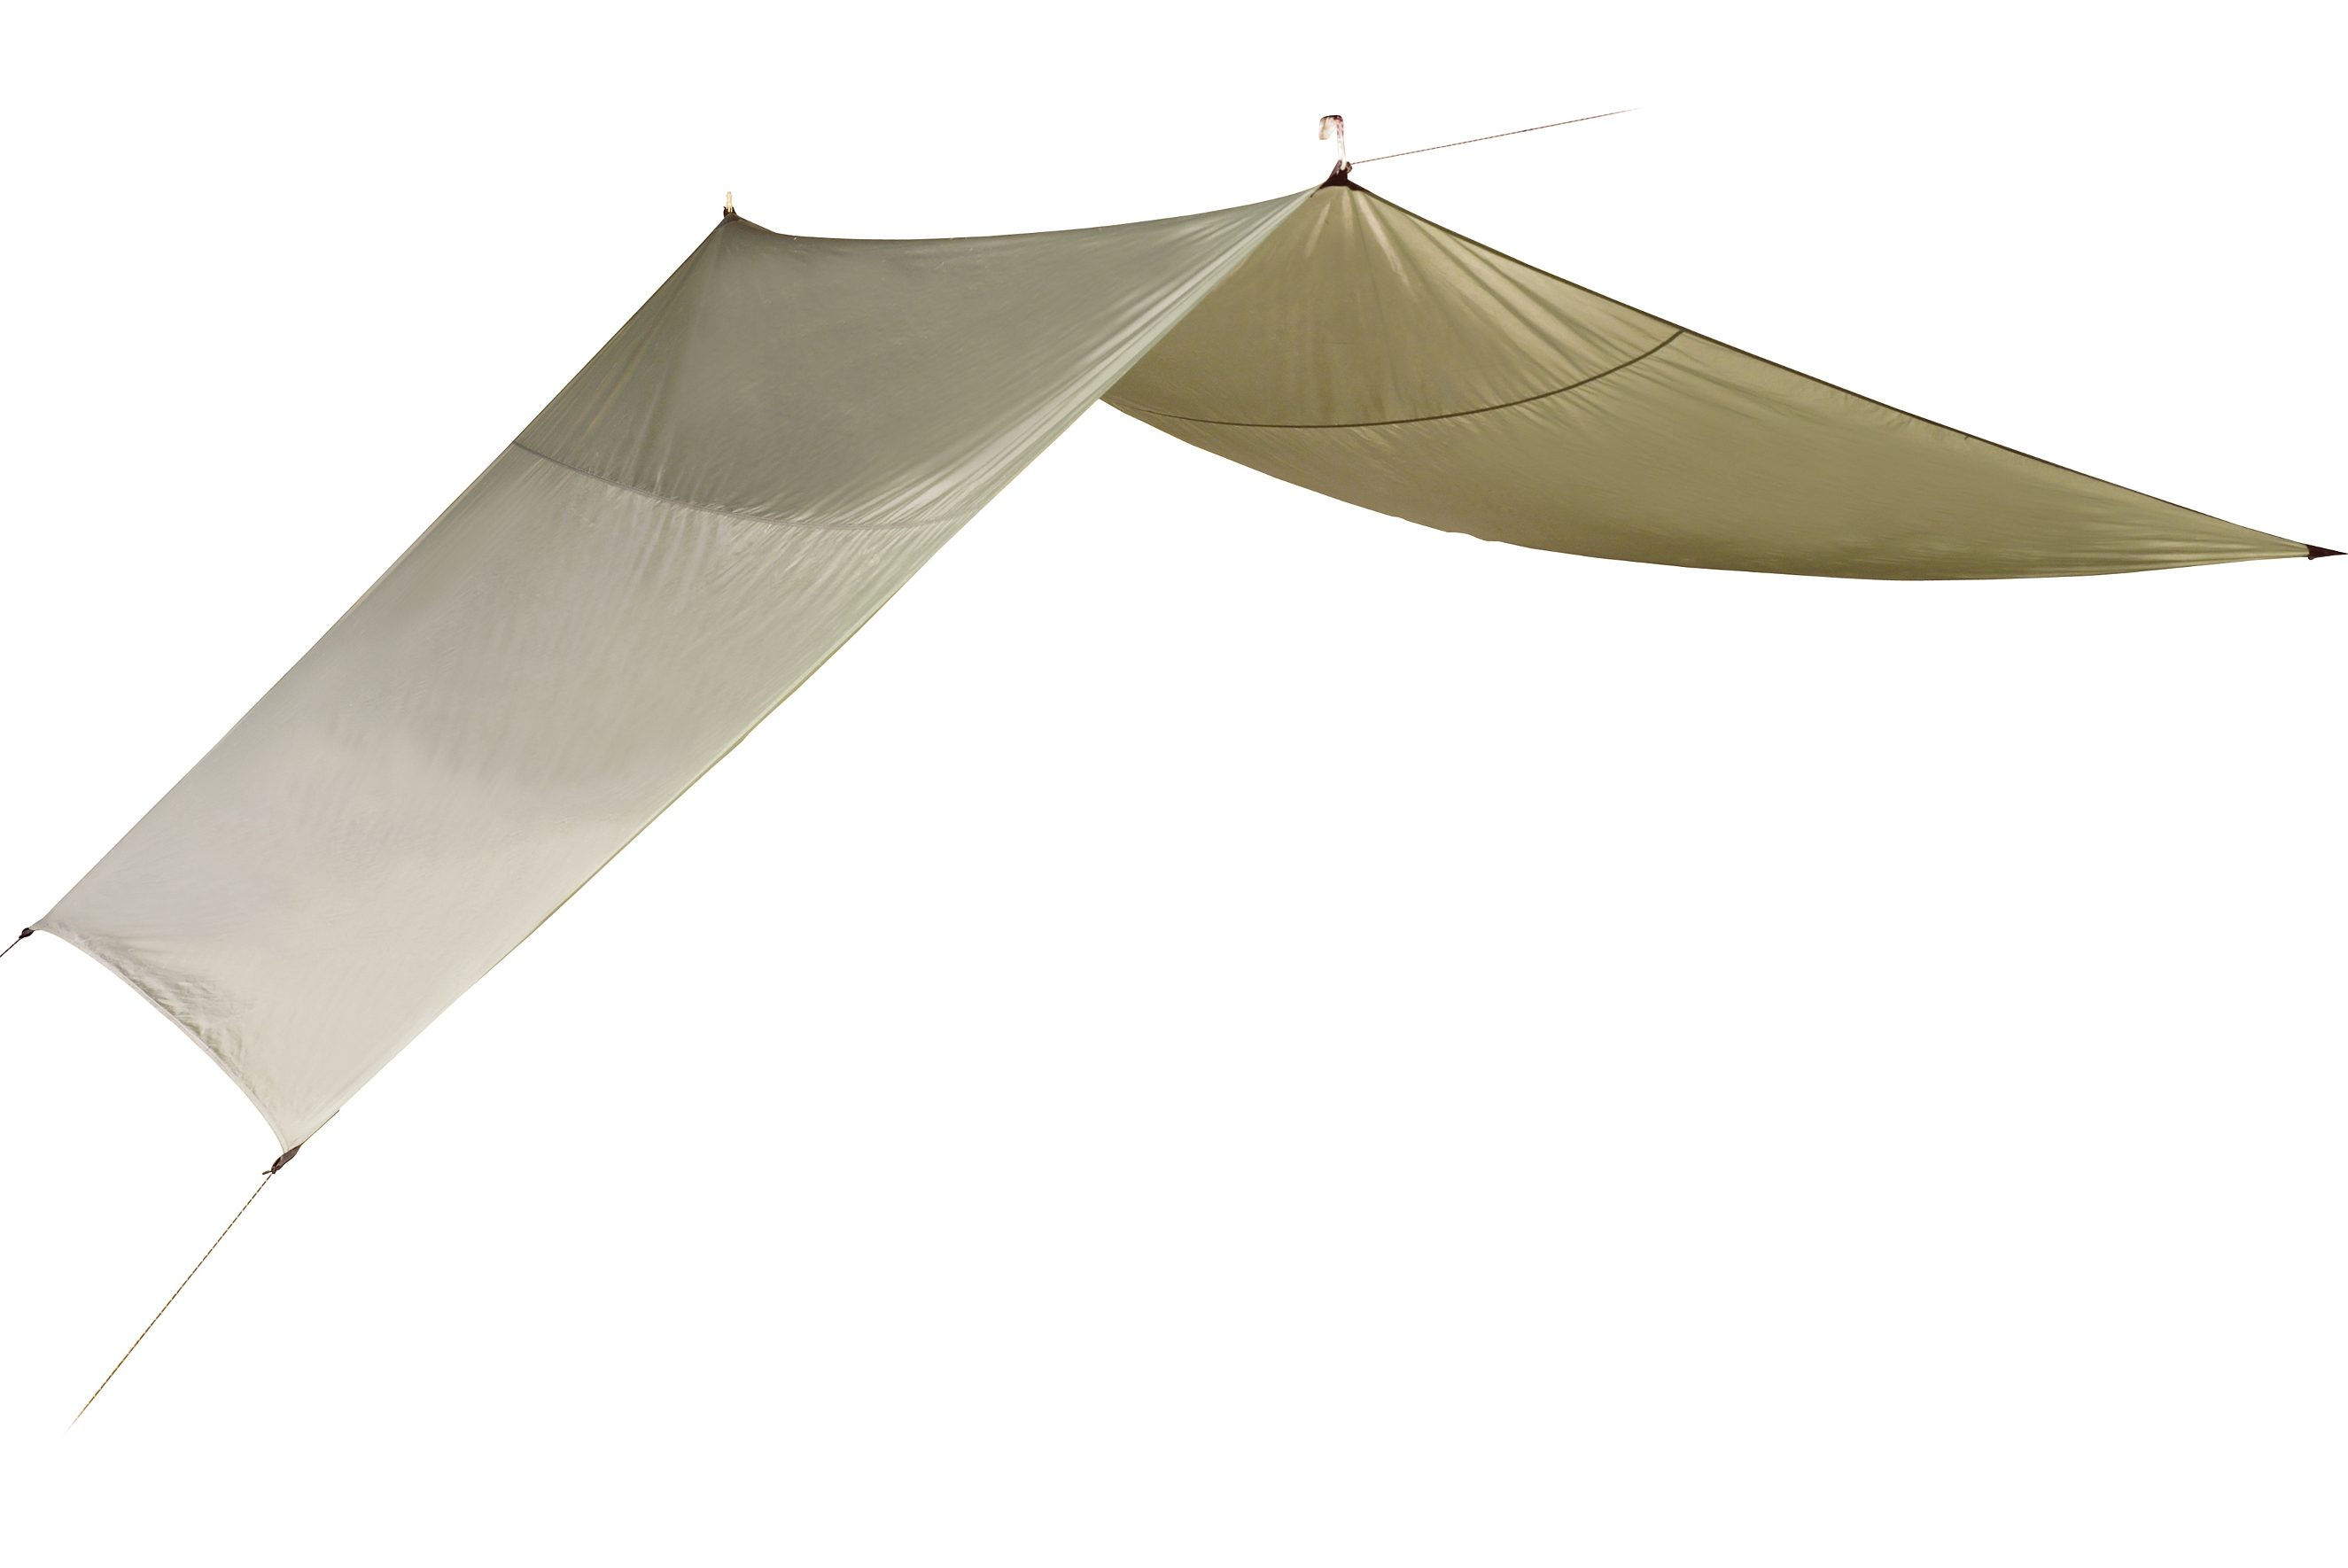 Nordisk Zelt »Kari 12 m² Tarp Technical Cotton«